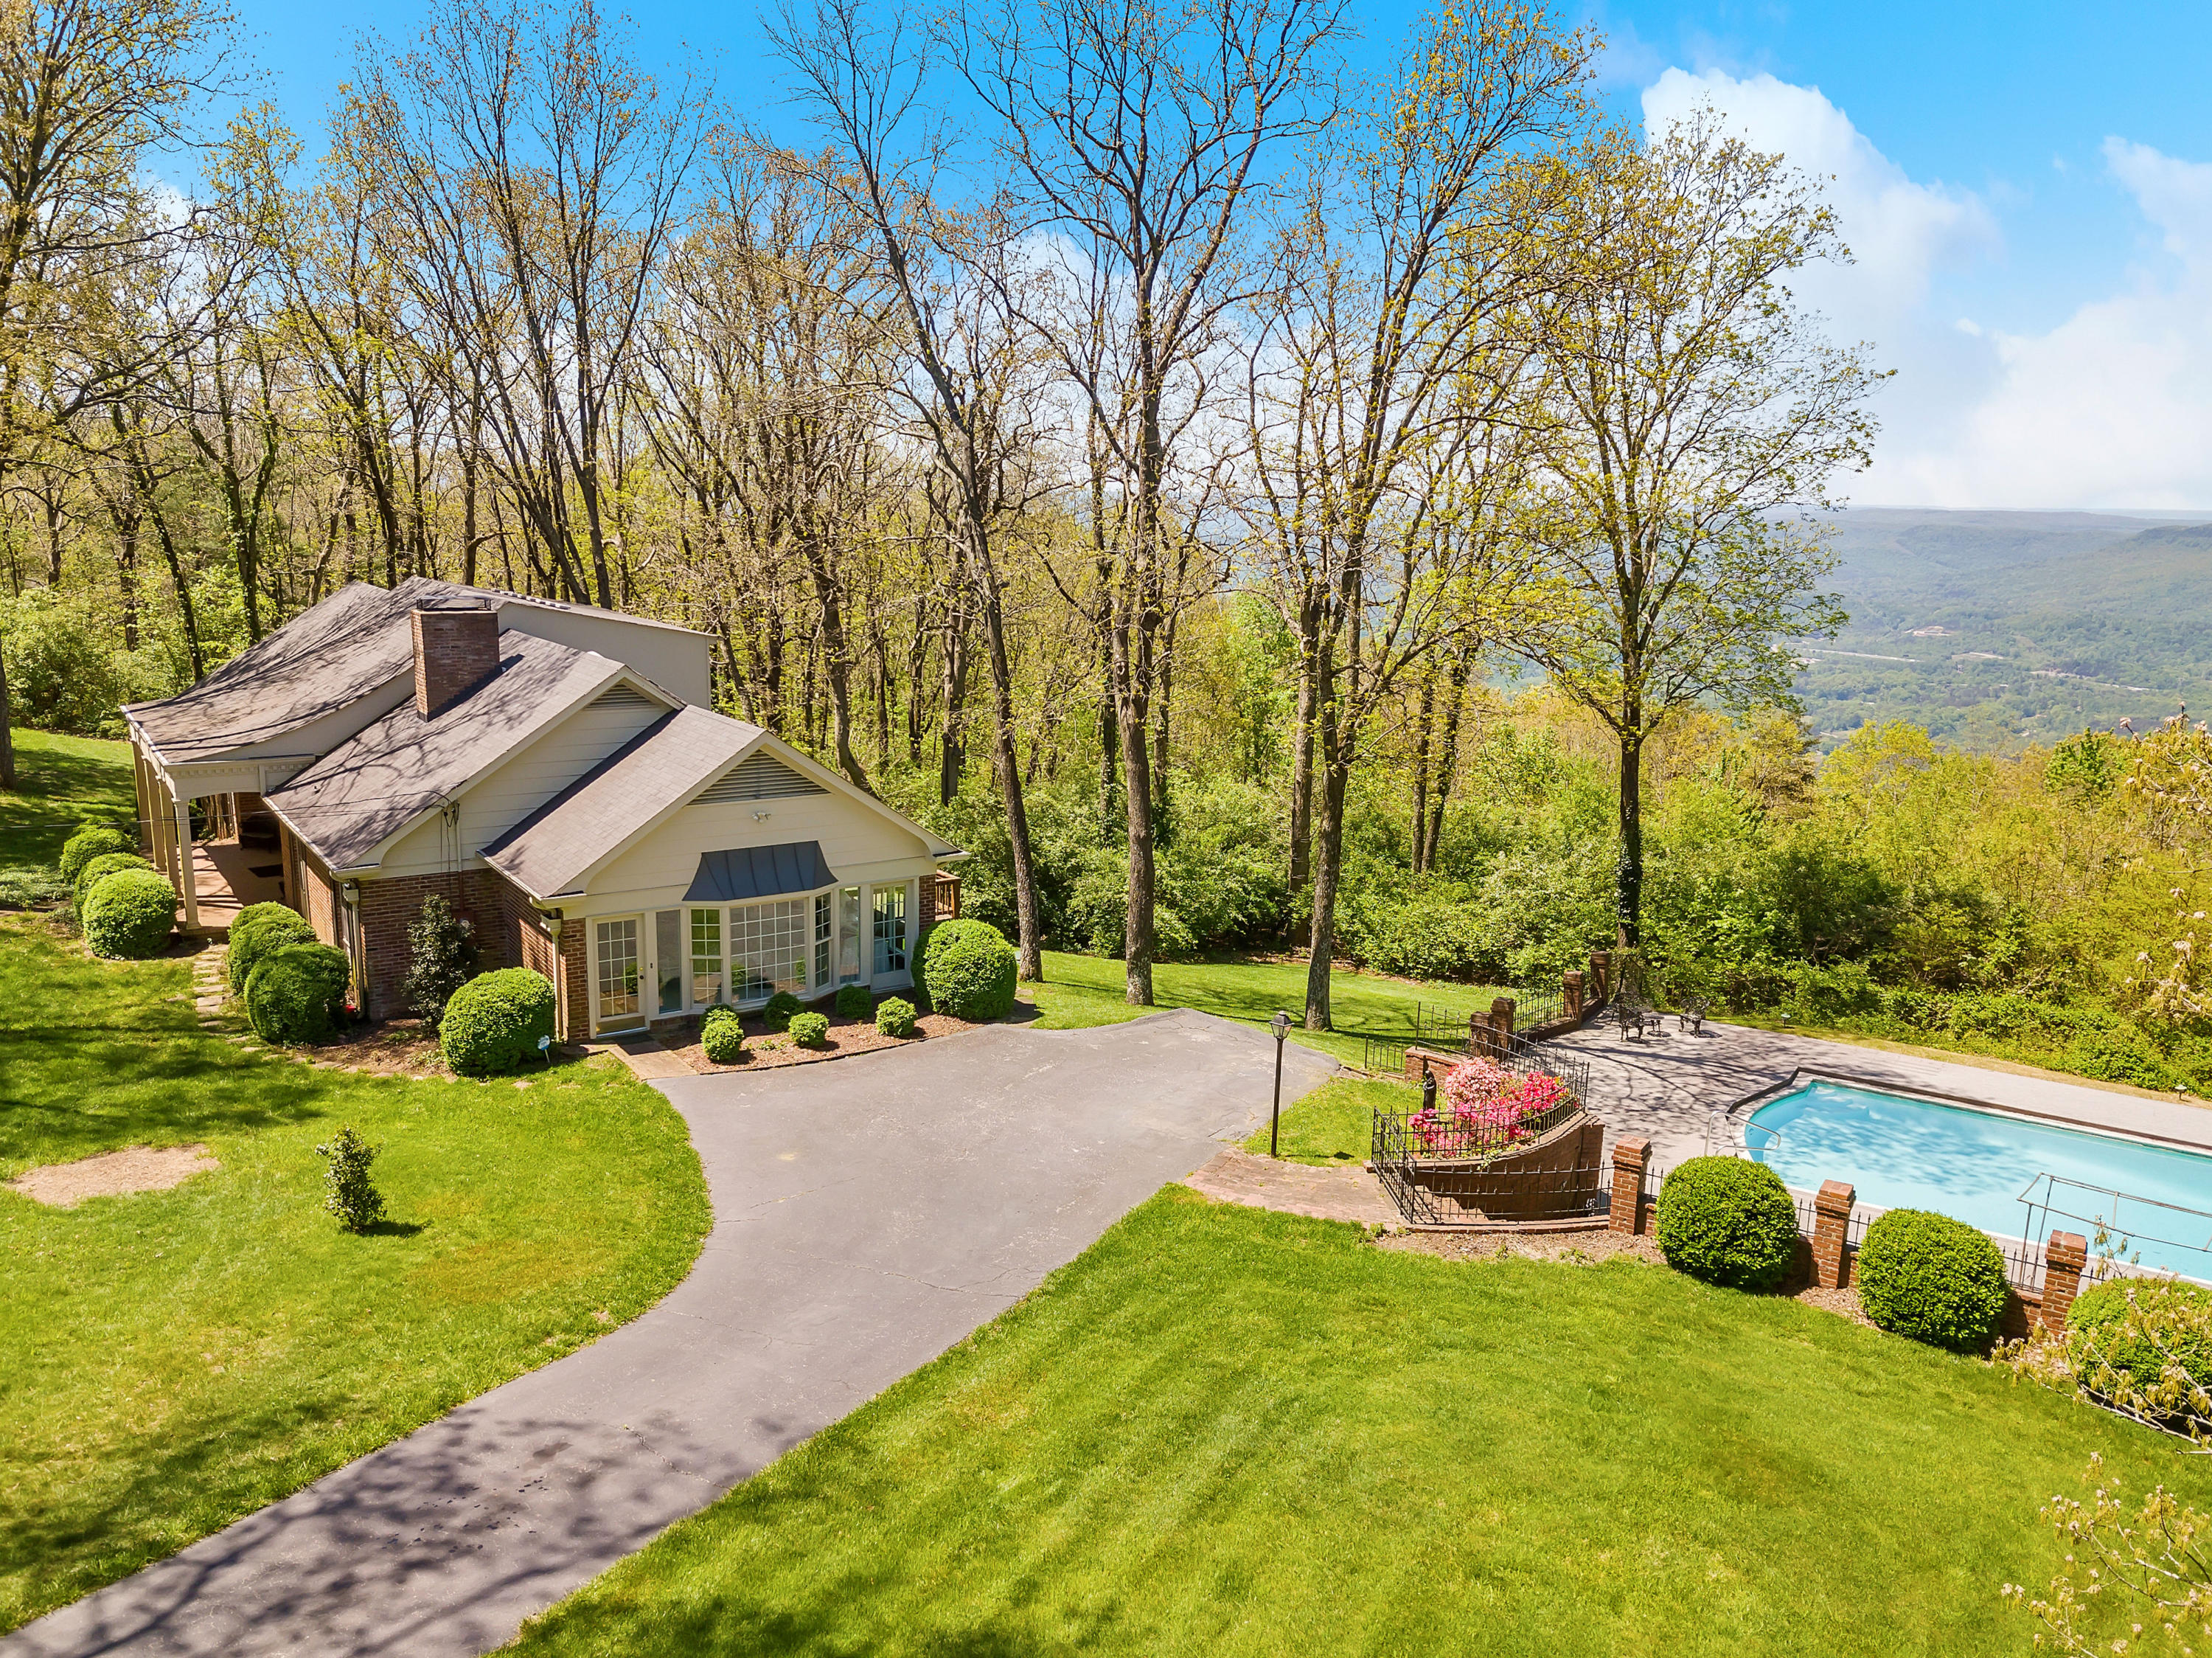 1040 Fort Stephenson Rd, Lookout Mountain, GA 30750